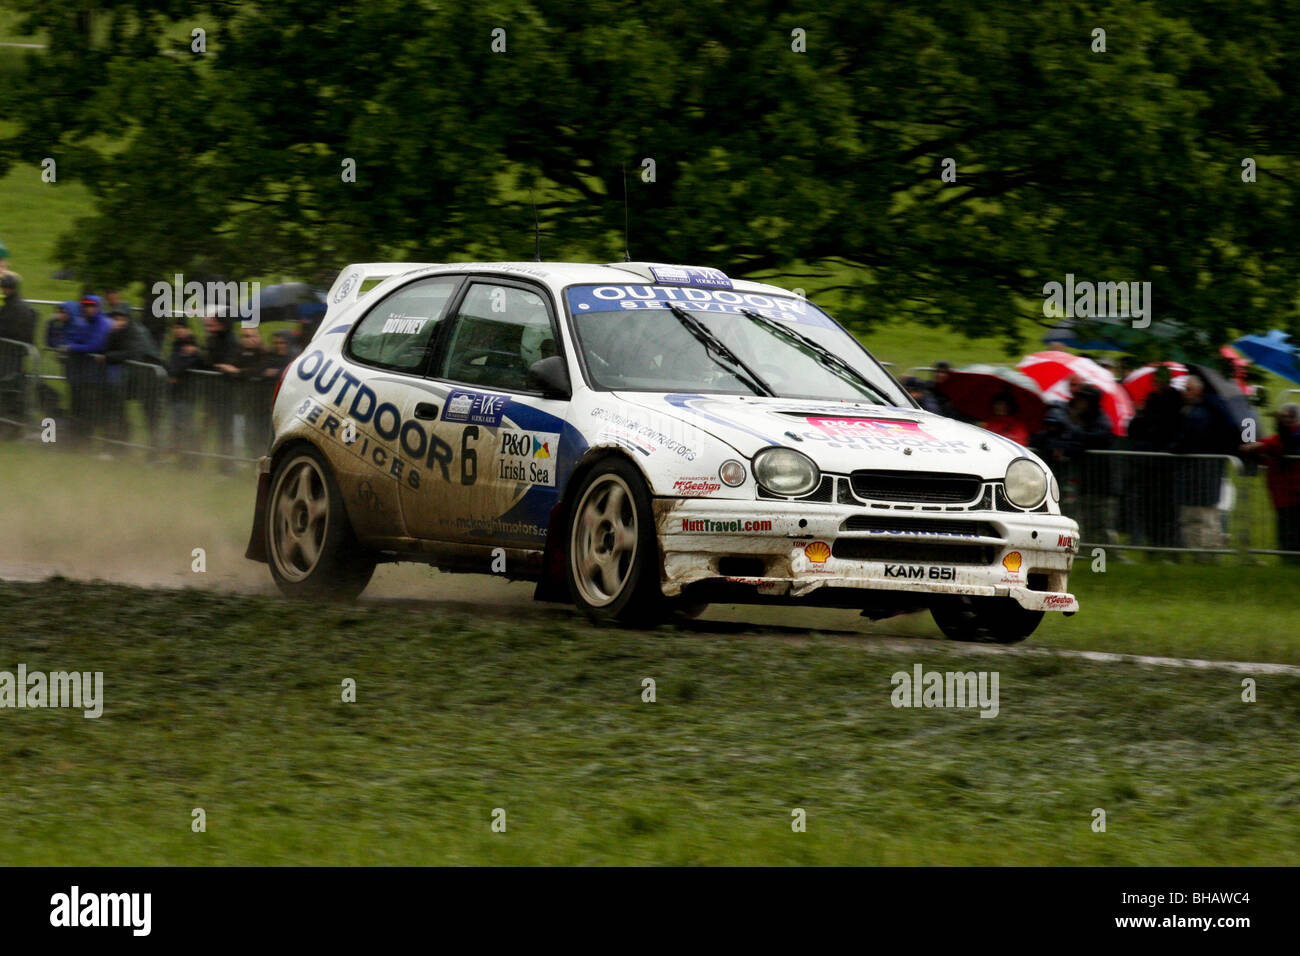 Noel Downey's Toyota Corolla rallying at Chatsworth special stage - Stock Image